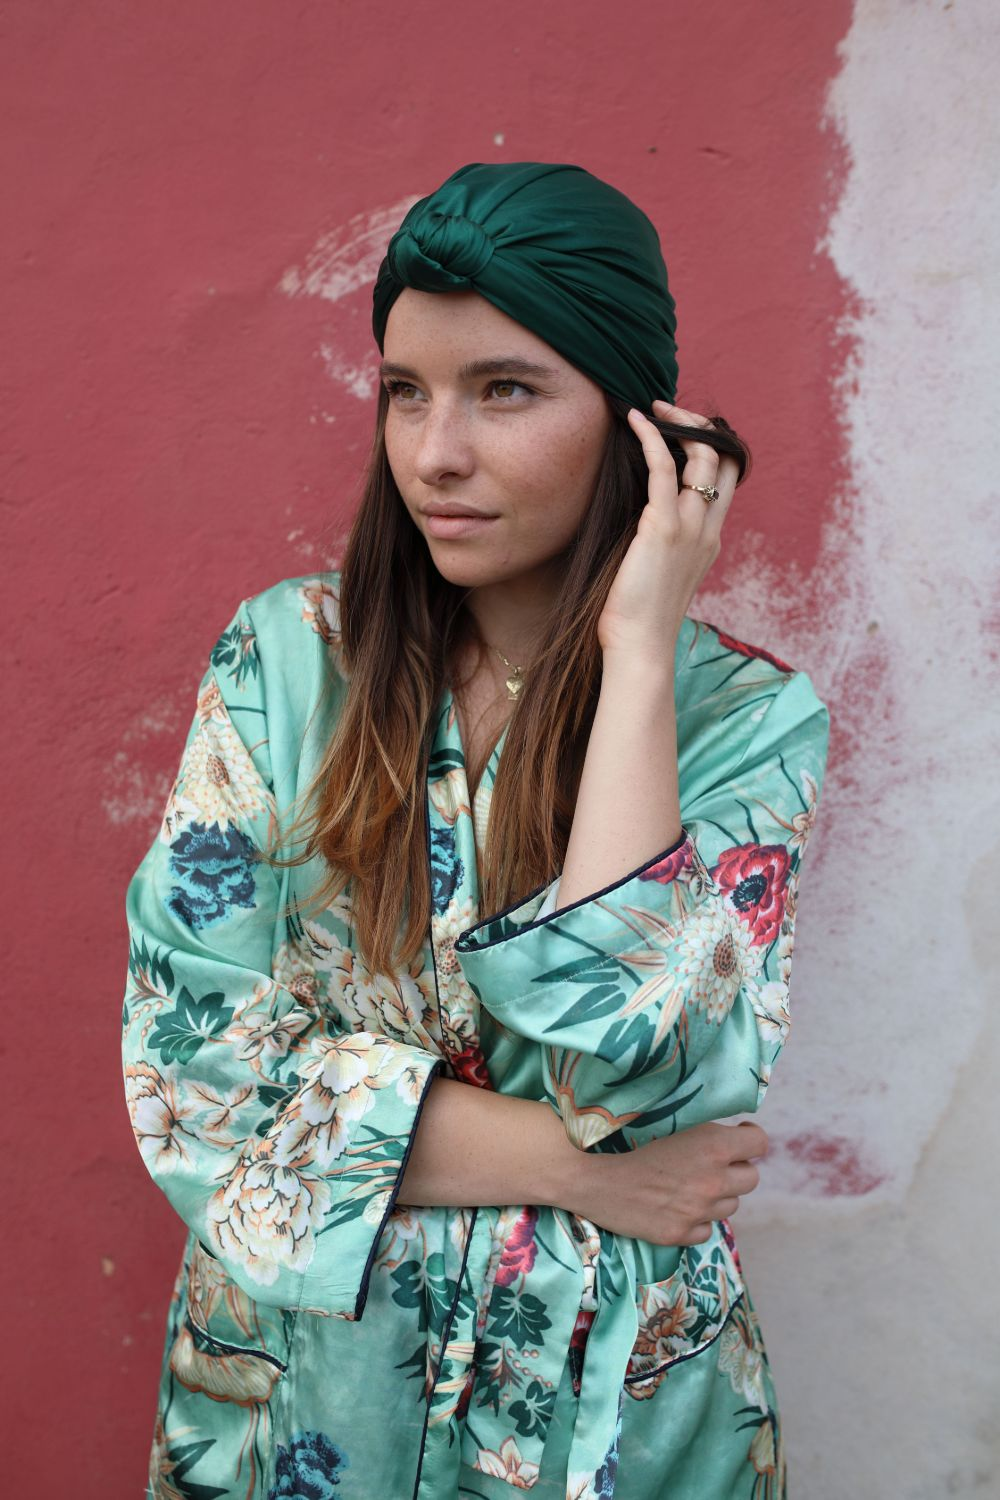 a female model is wearing a emerald green turban